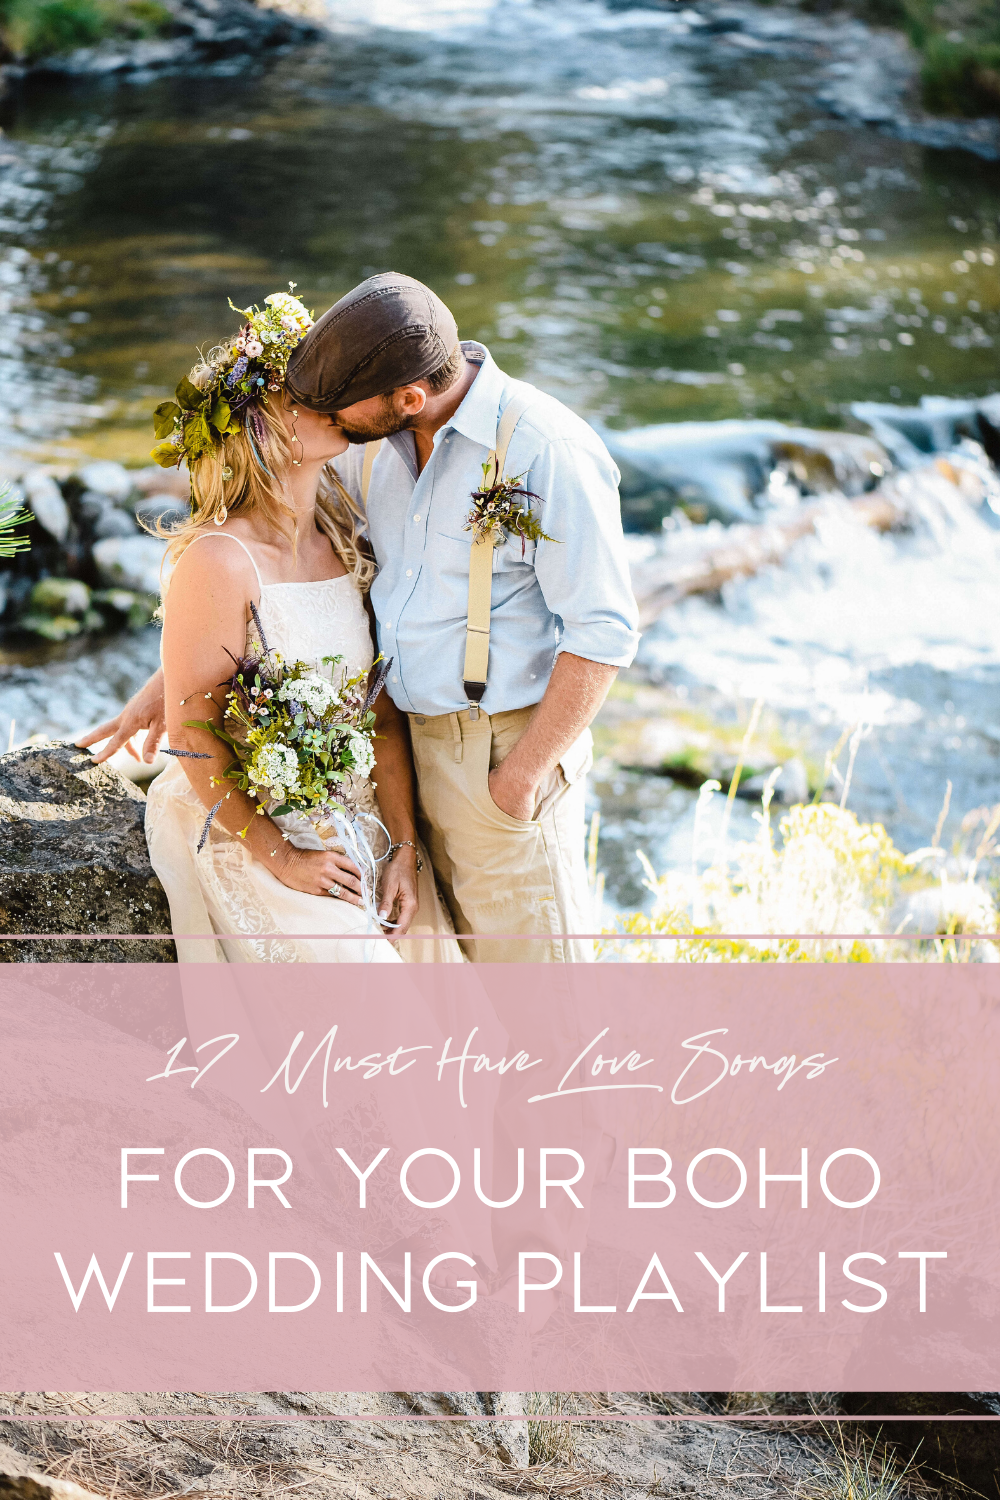 17 Songs For Your Boho Wedding Playlist In 2020 Wedding Playlist Indie Wedding Songs Folk Wedding